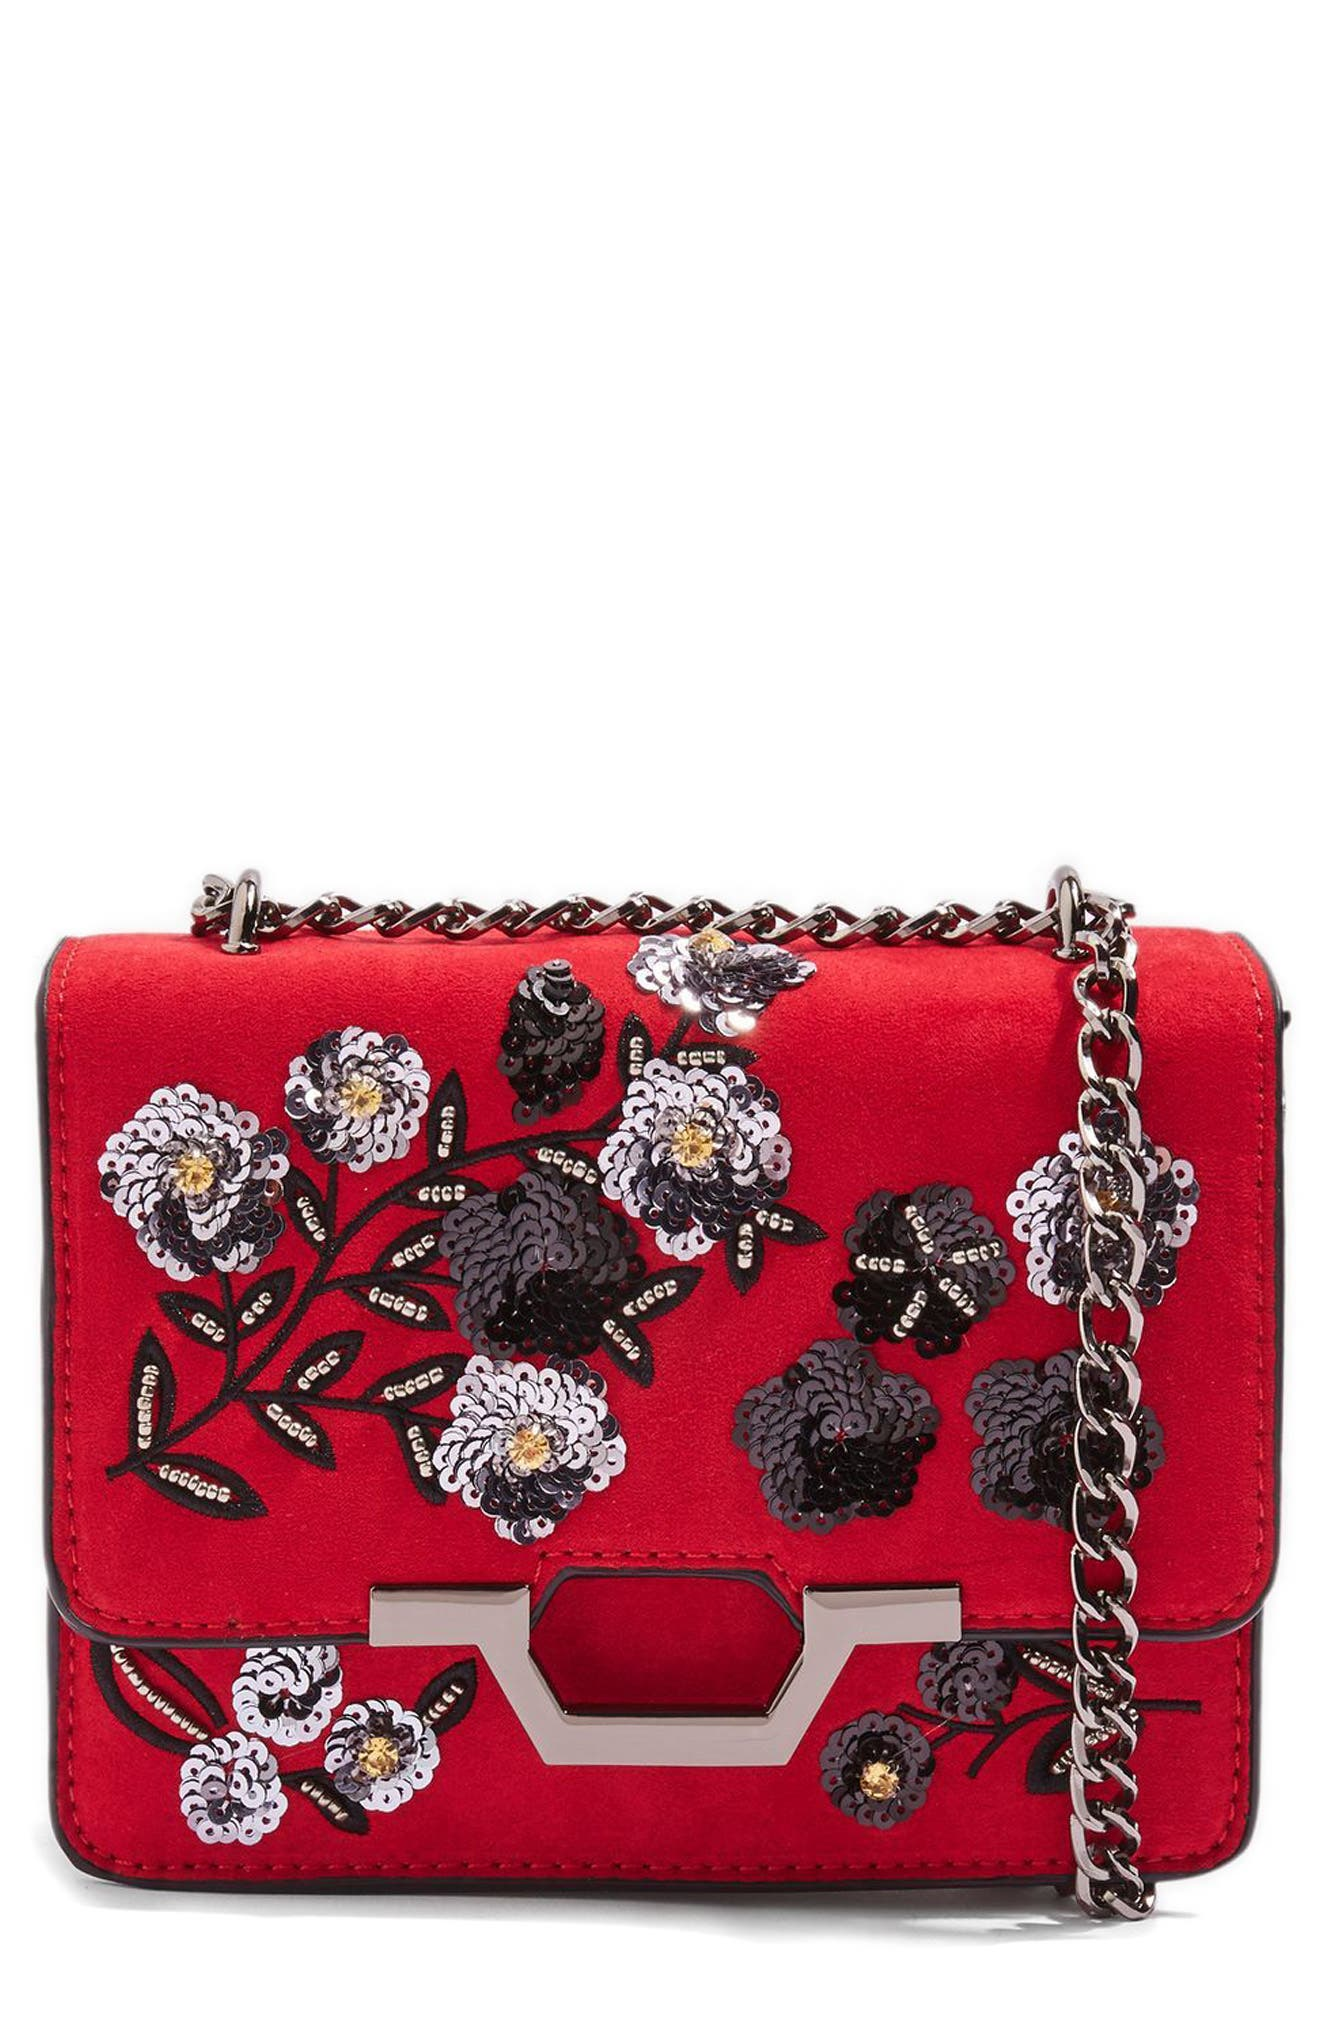 Alternate Image 1 Selected - Topshop Kylie Embellished Faux Suede Crossbody Bag